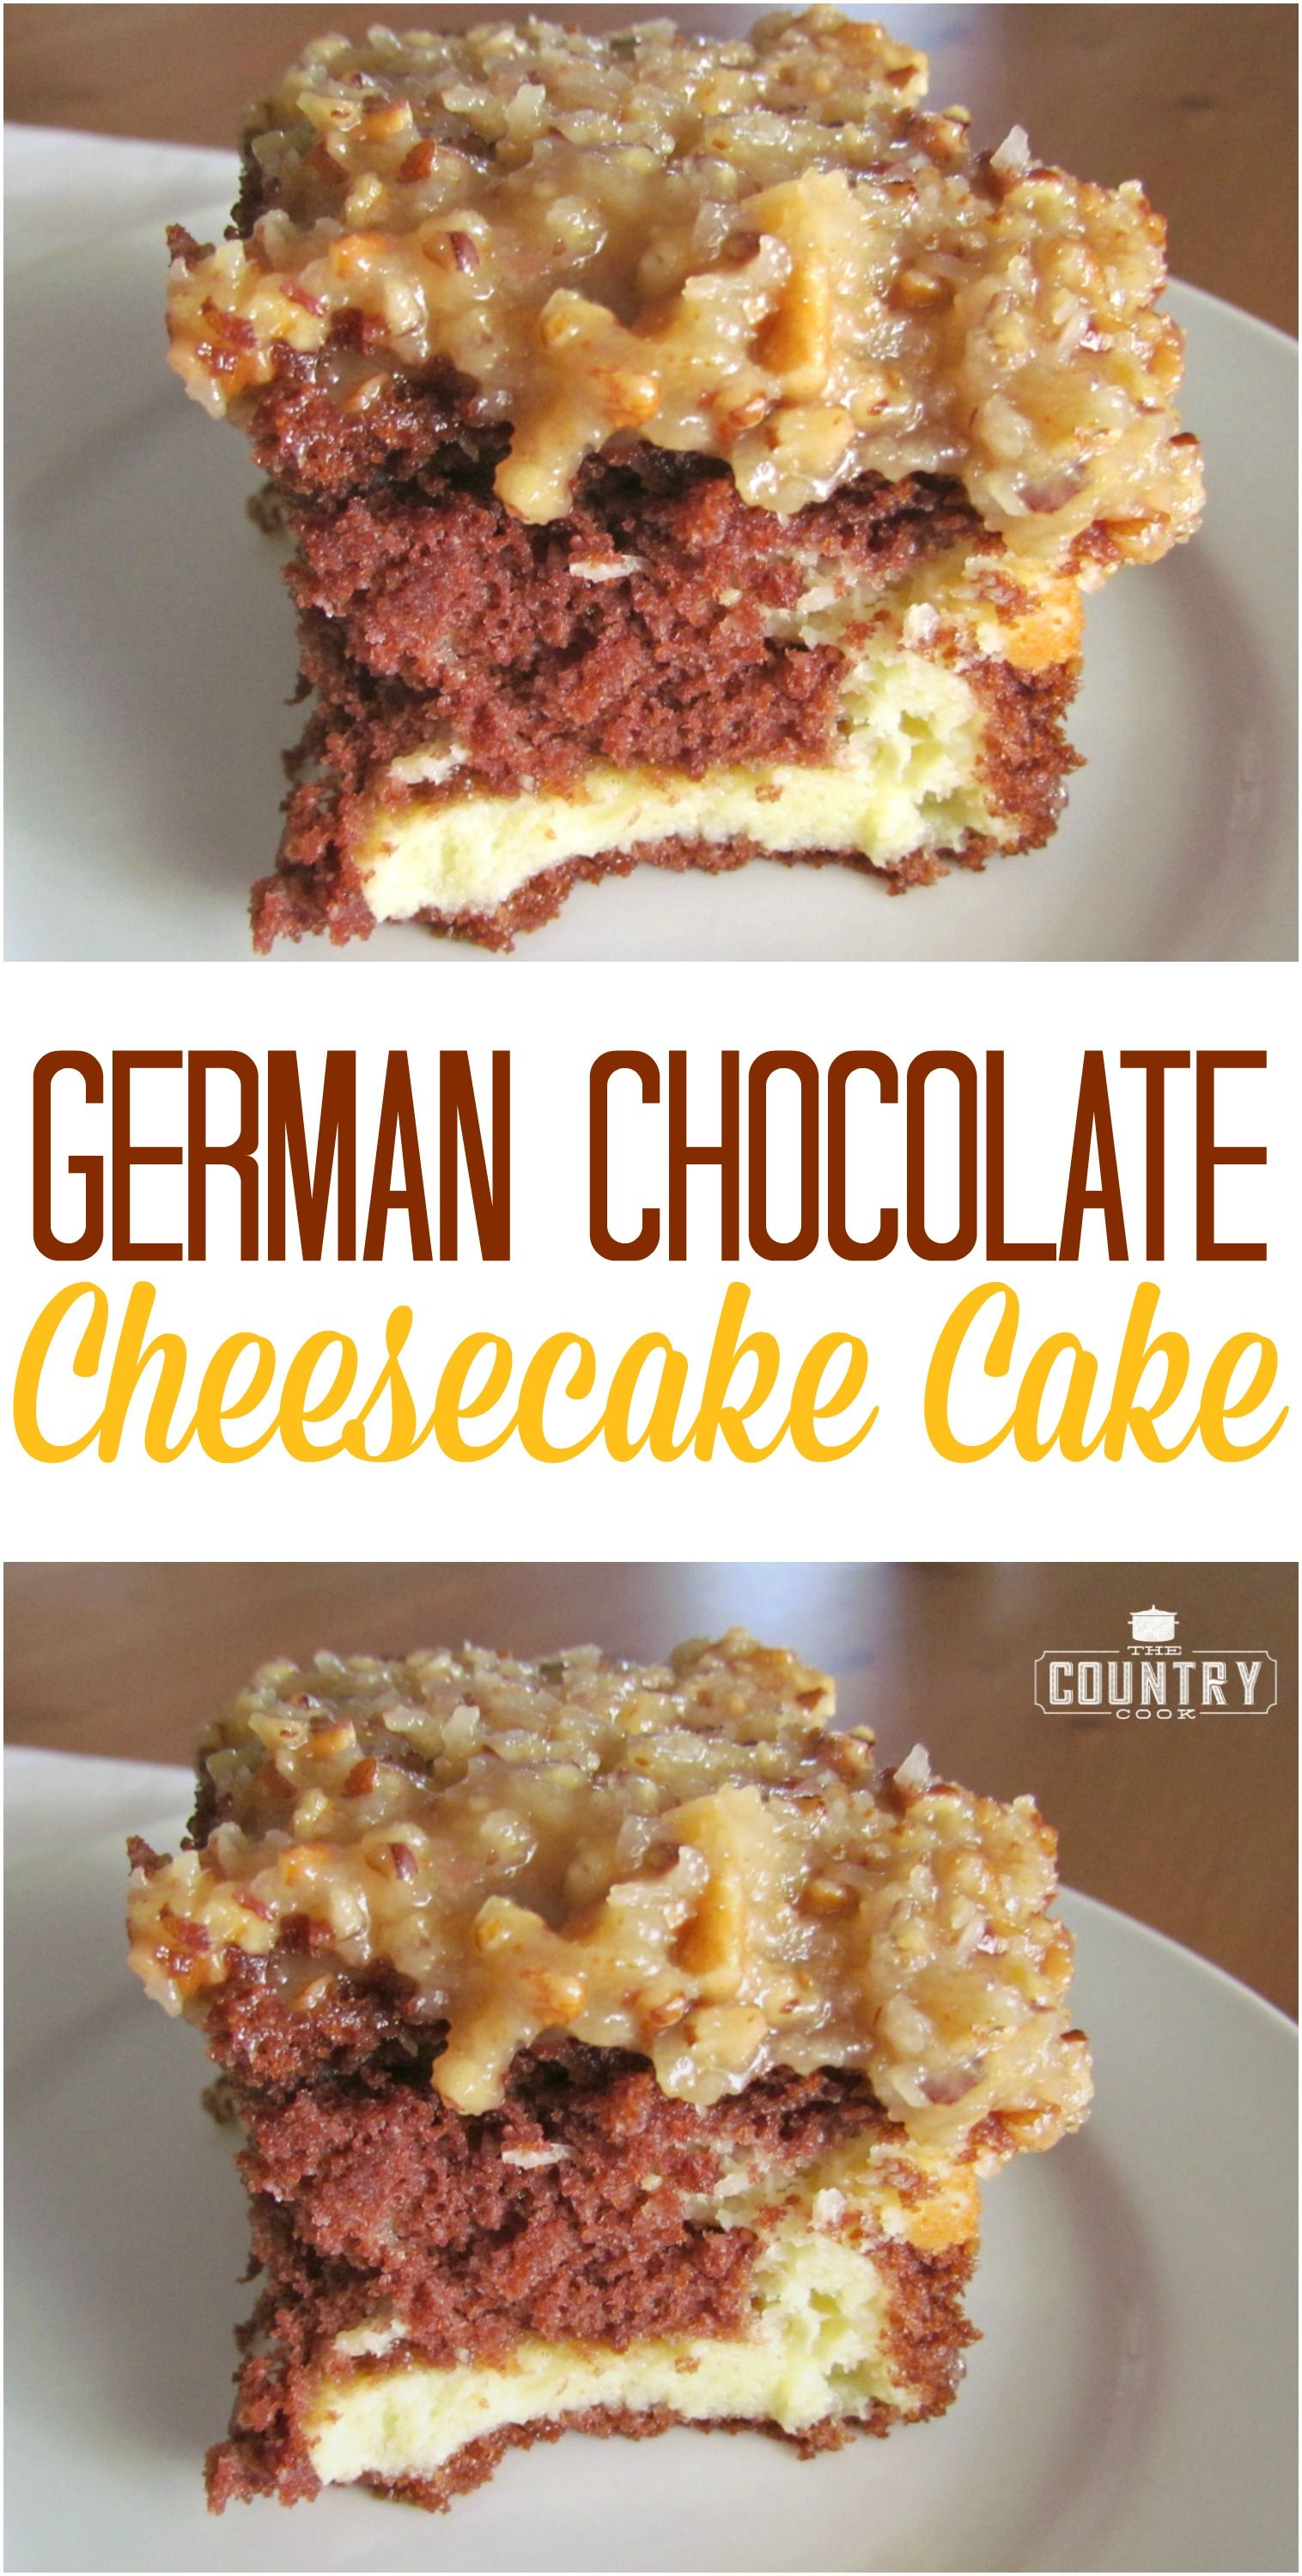 GERMAN CHOCOLATE CHEESECAKE CAKE | The Country Cook